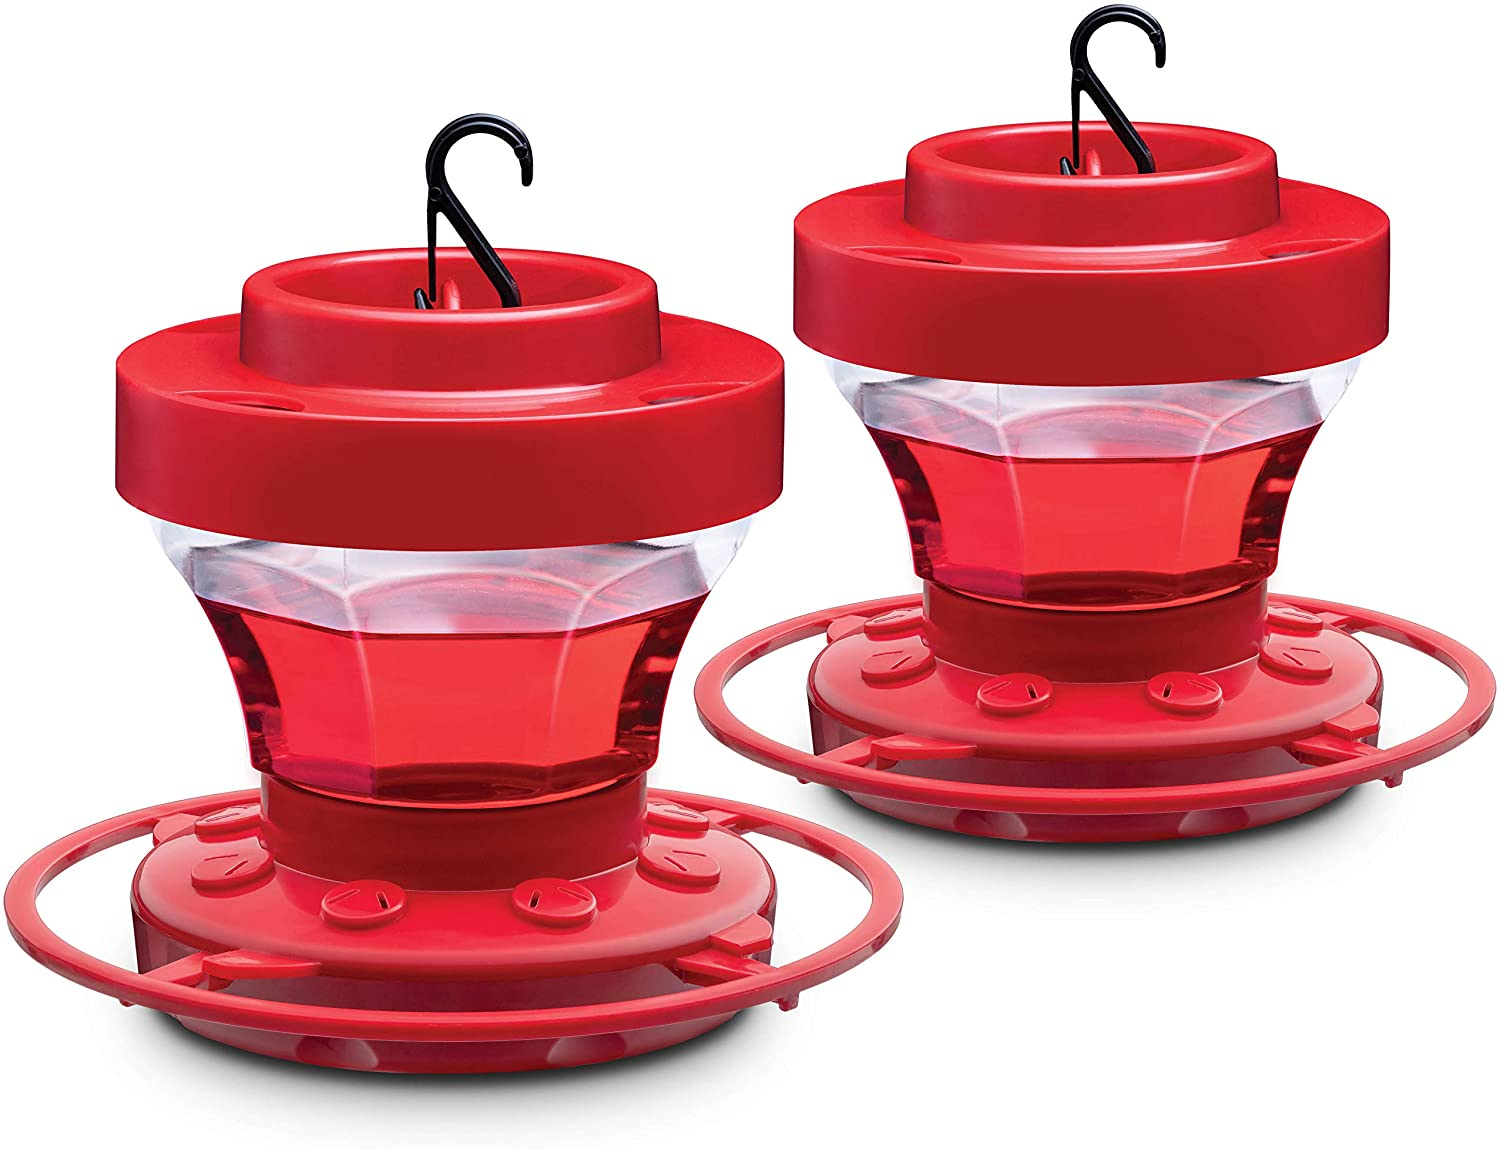 Bee Proof Hummingbird Feeder 16 oz [Set of 2] Plastic Hummingbird Feeders for Outdoors With Ant Guard - Circular Perch With 8 Feeding Ports - Wide Mouth for Easy Filling/2 Part Base for Easy Cleaning